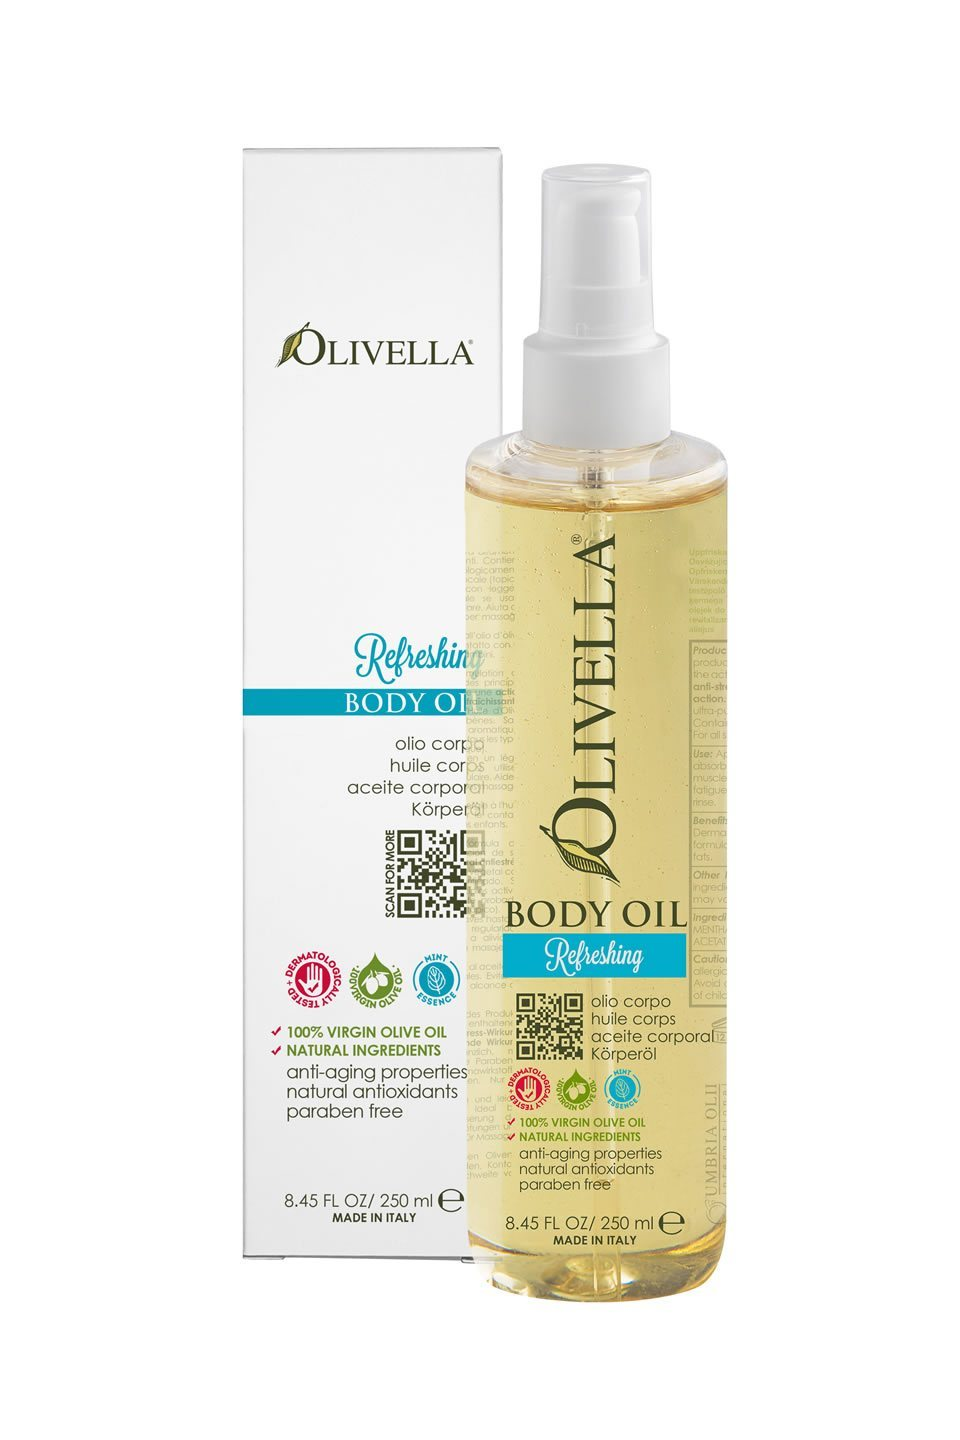 Olivella Body Oil - Refreshing - Olivella Official Store